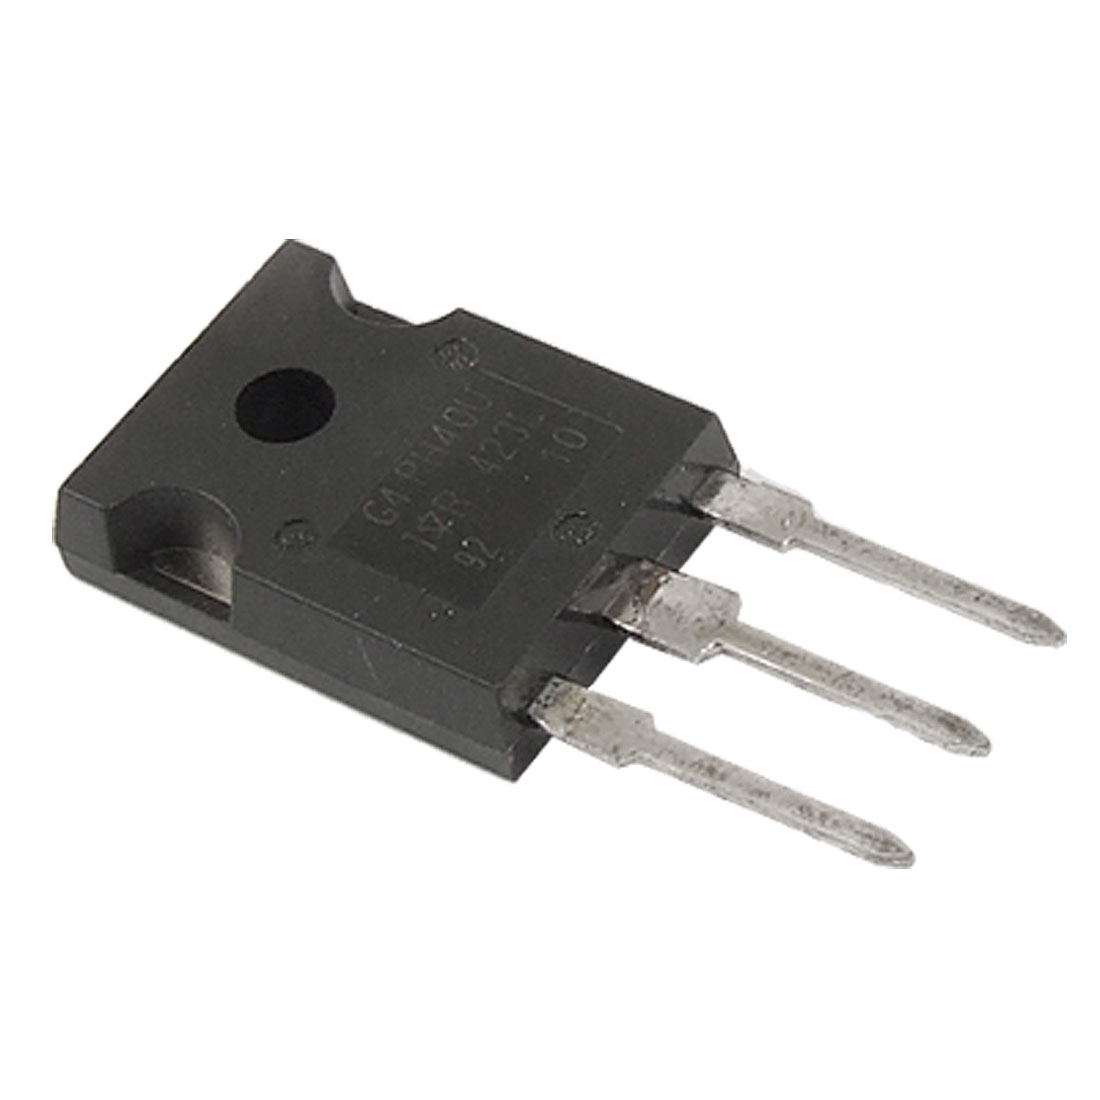 IRG4PH40U 20A 1200V 3 Terminals Fast Switching IGBT Transistor